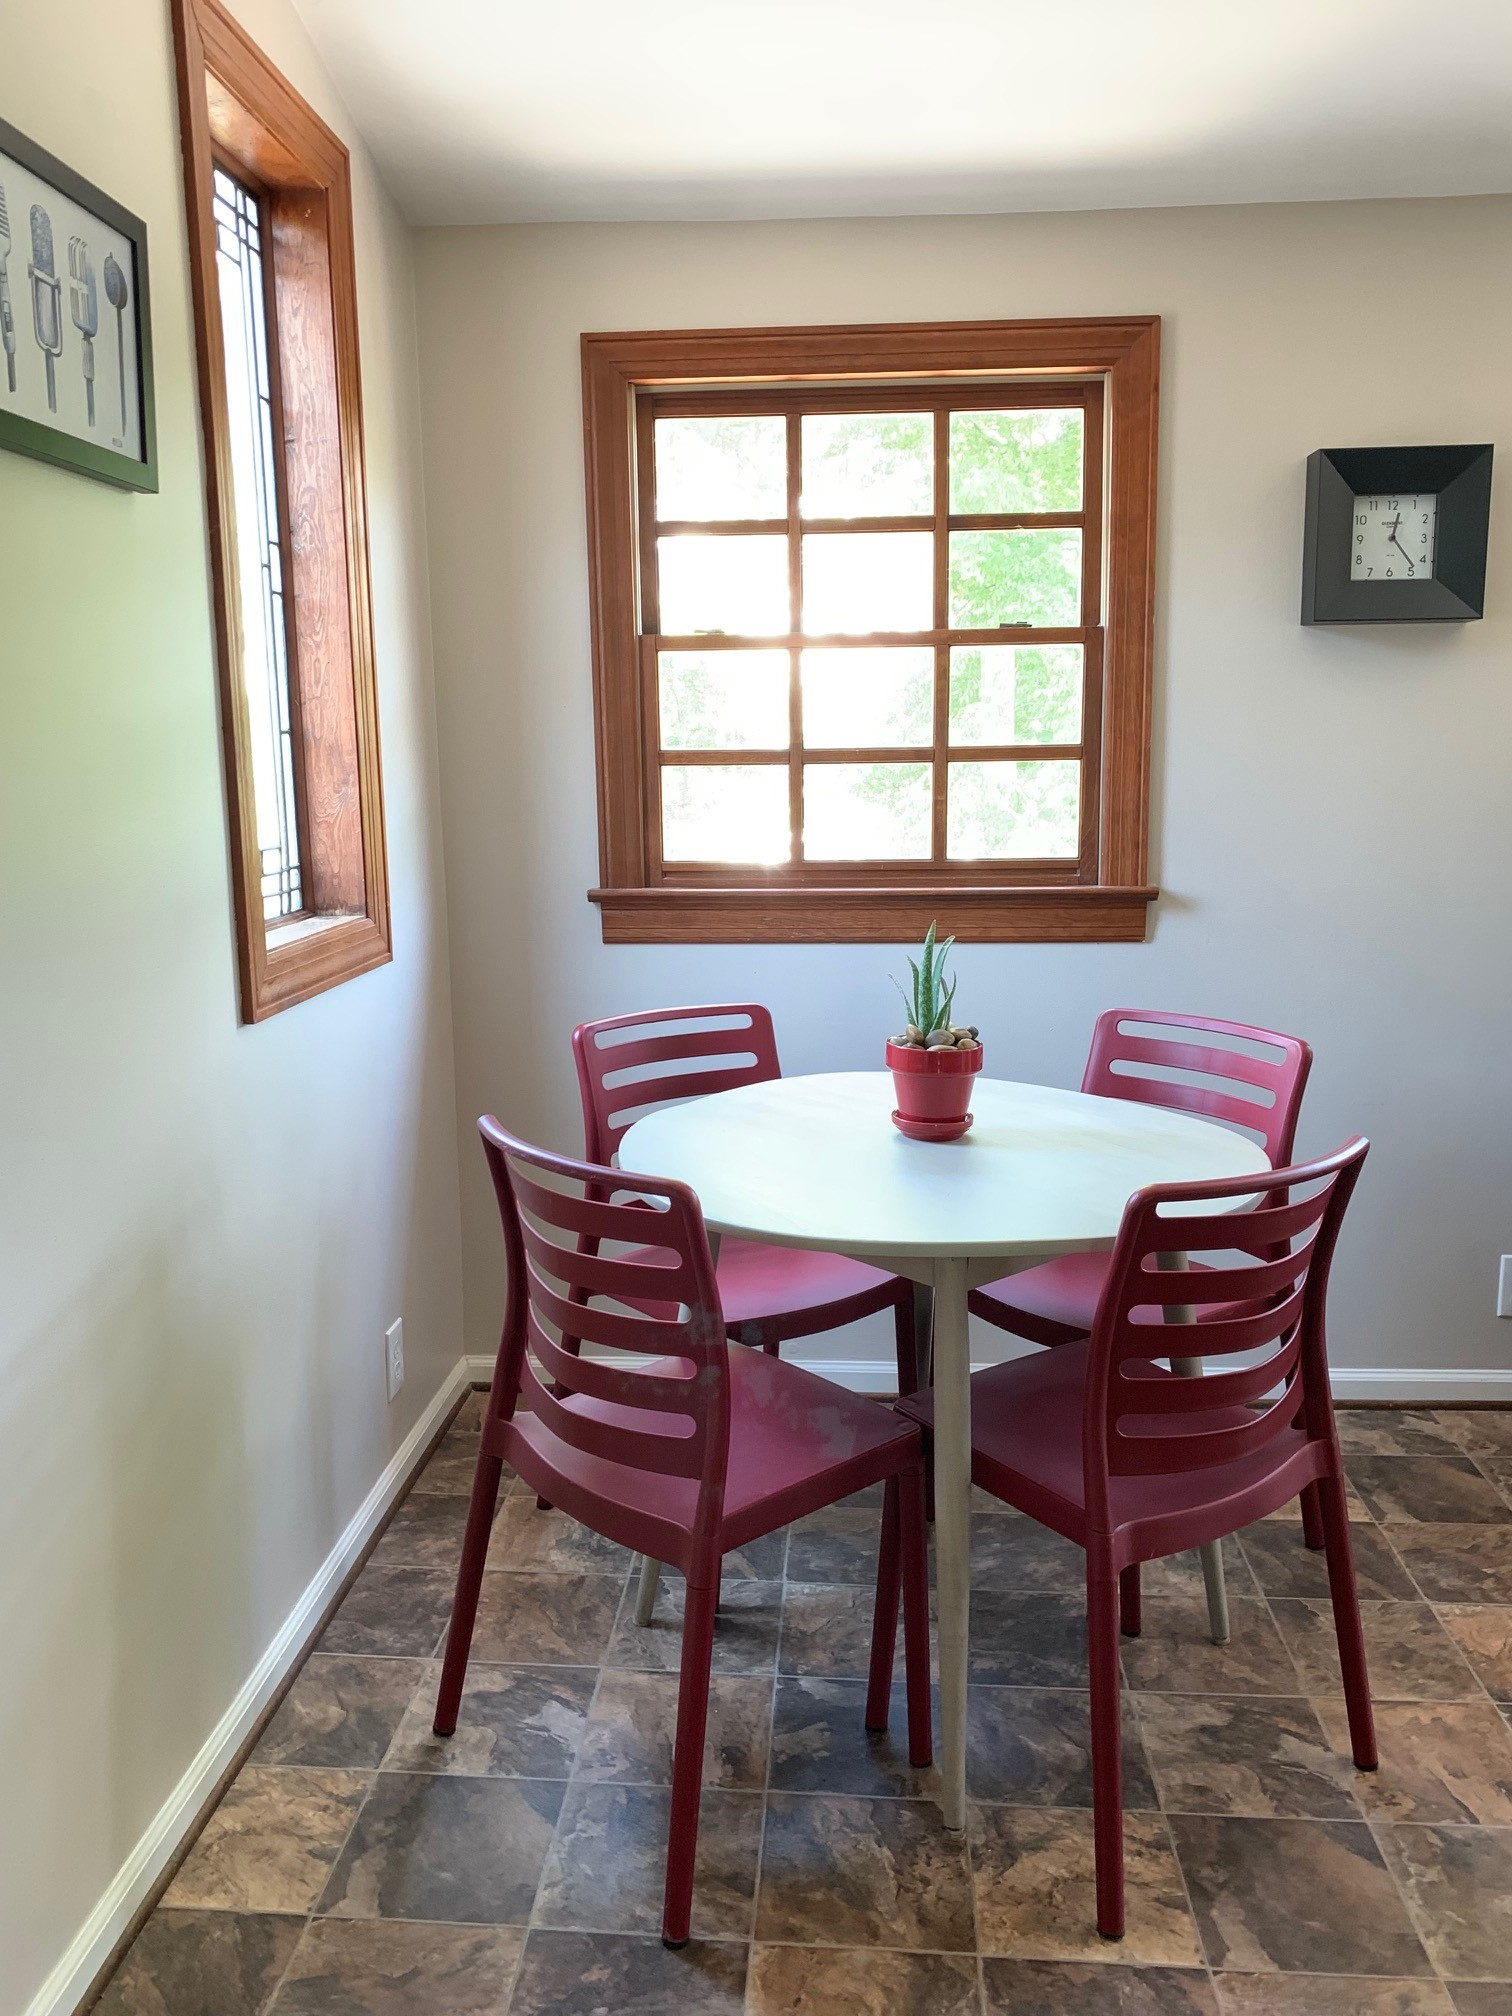 DINING TABLE AND WINDOWS.jpg